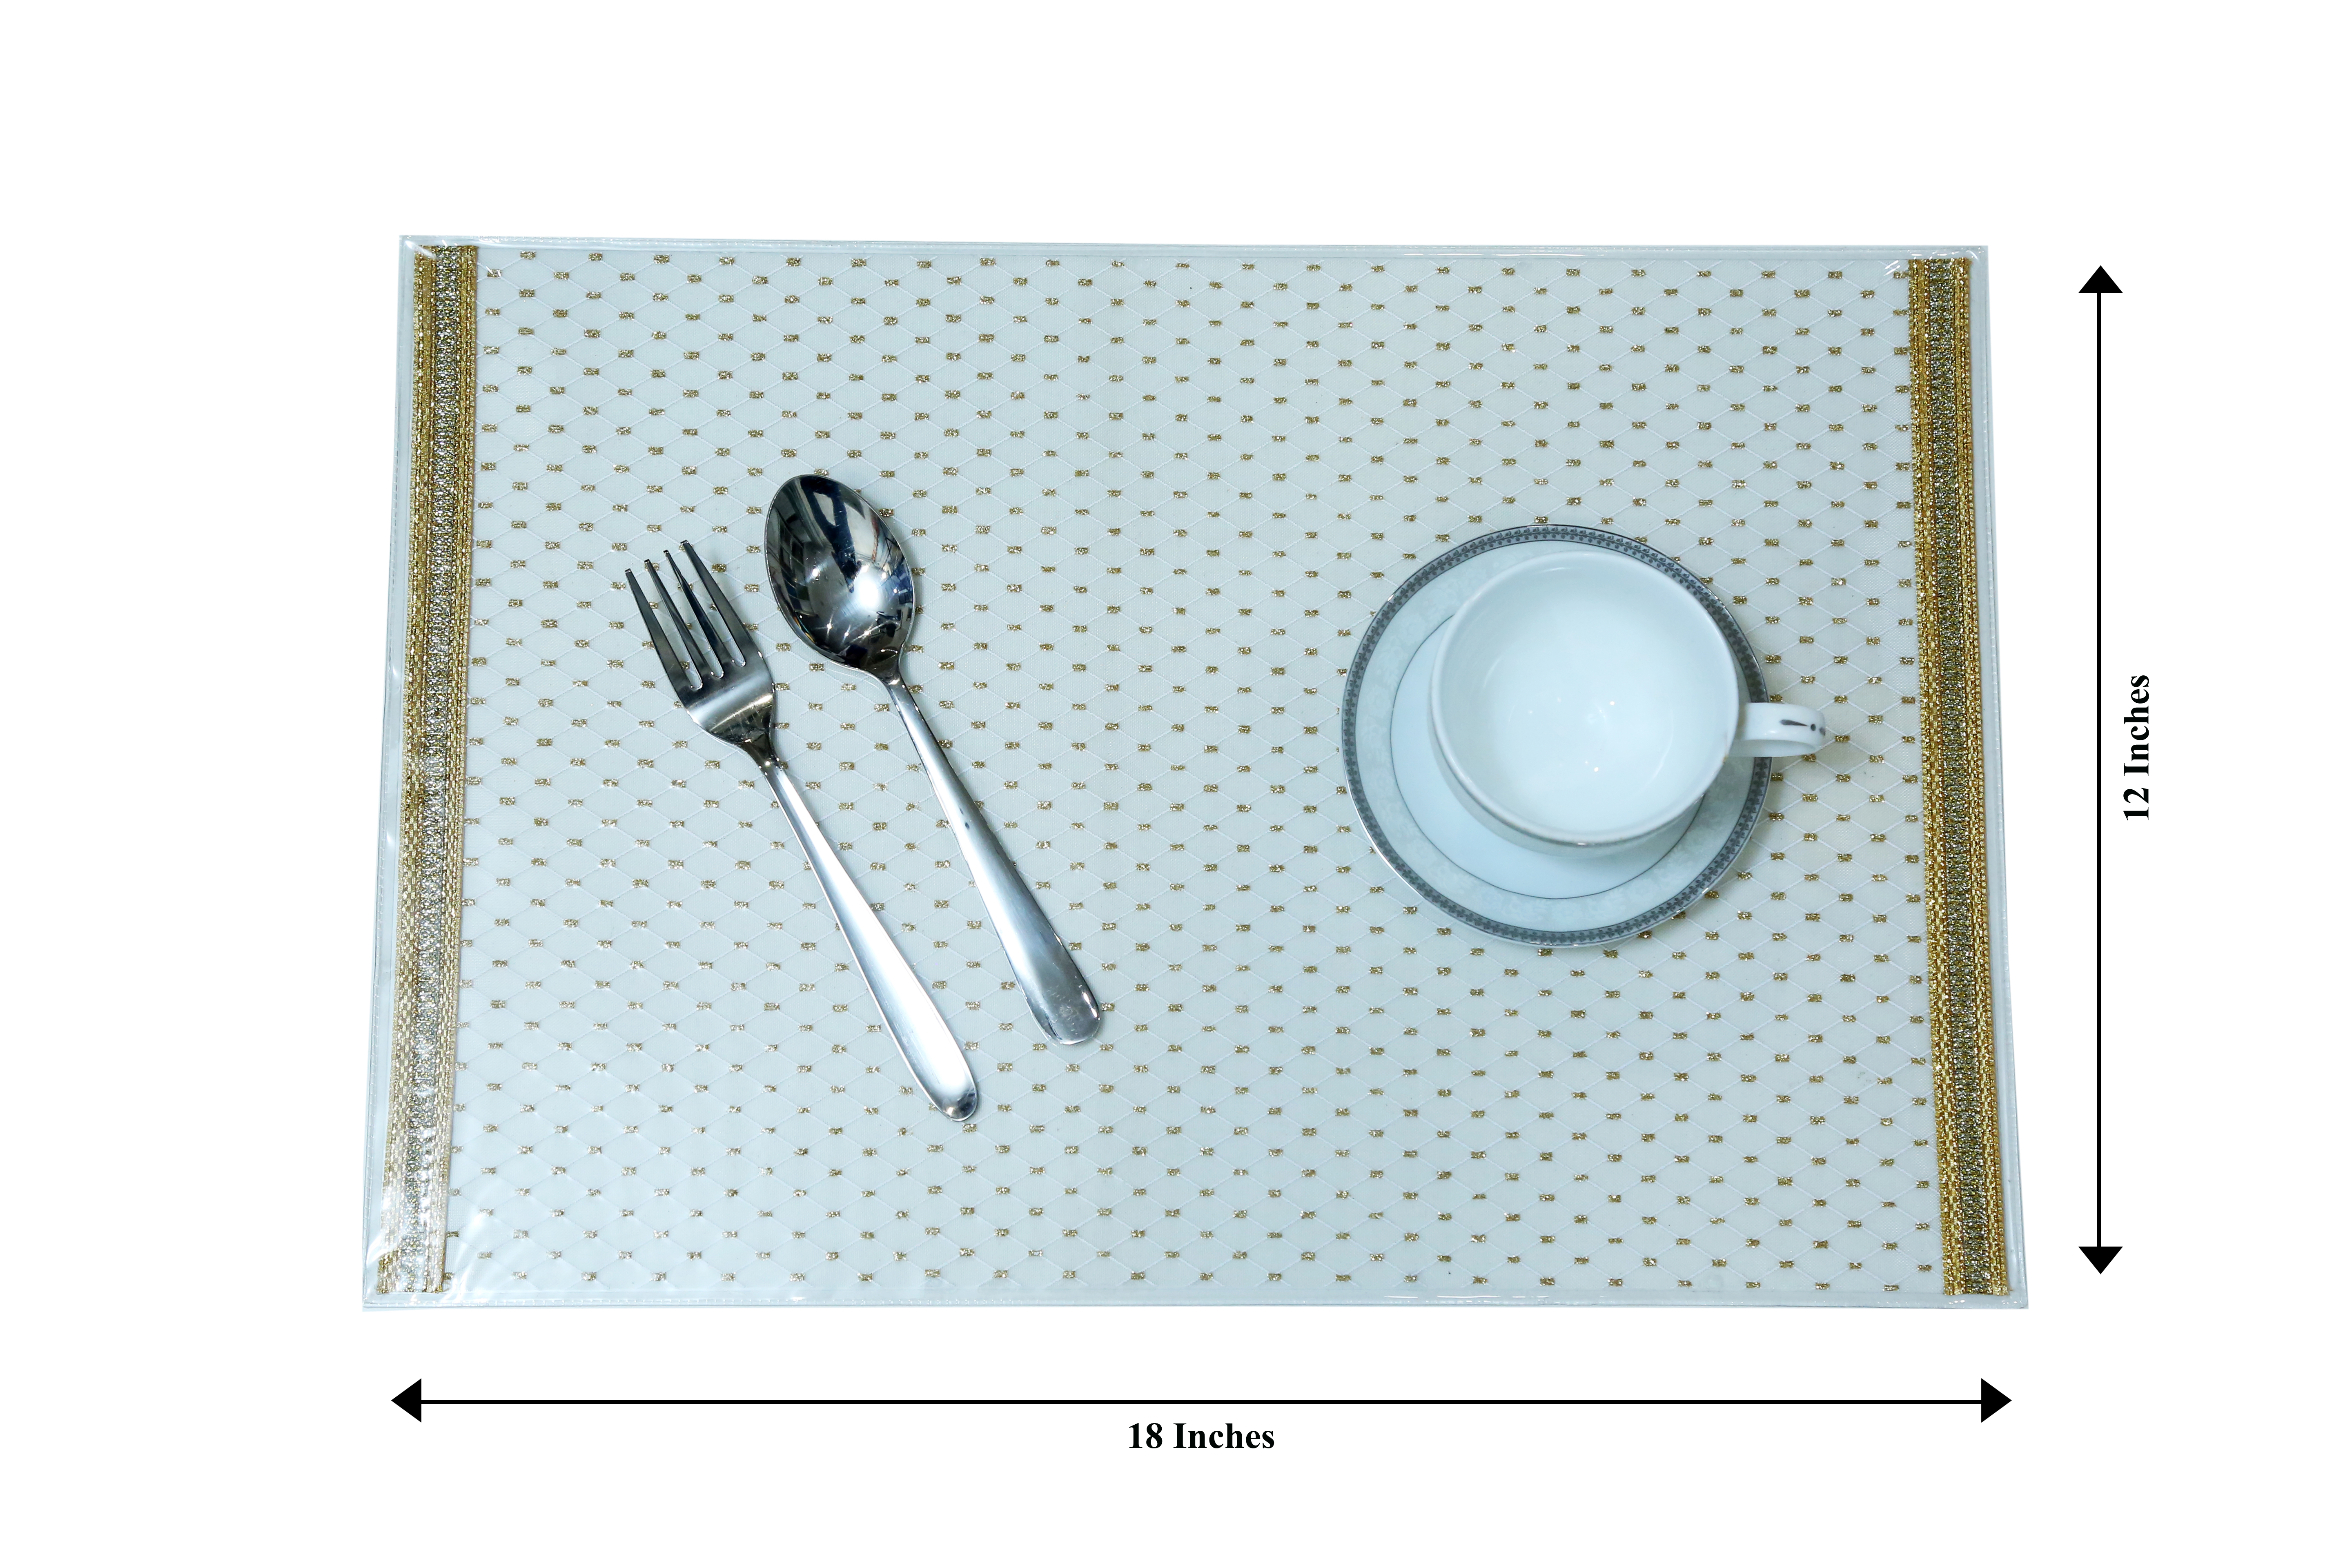 Florance Table Mats, Kitchen & Dining White Placemats Set Of 6 (White, 12 x 18)